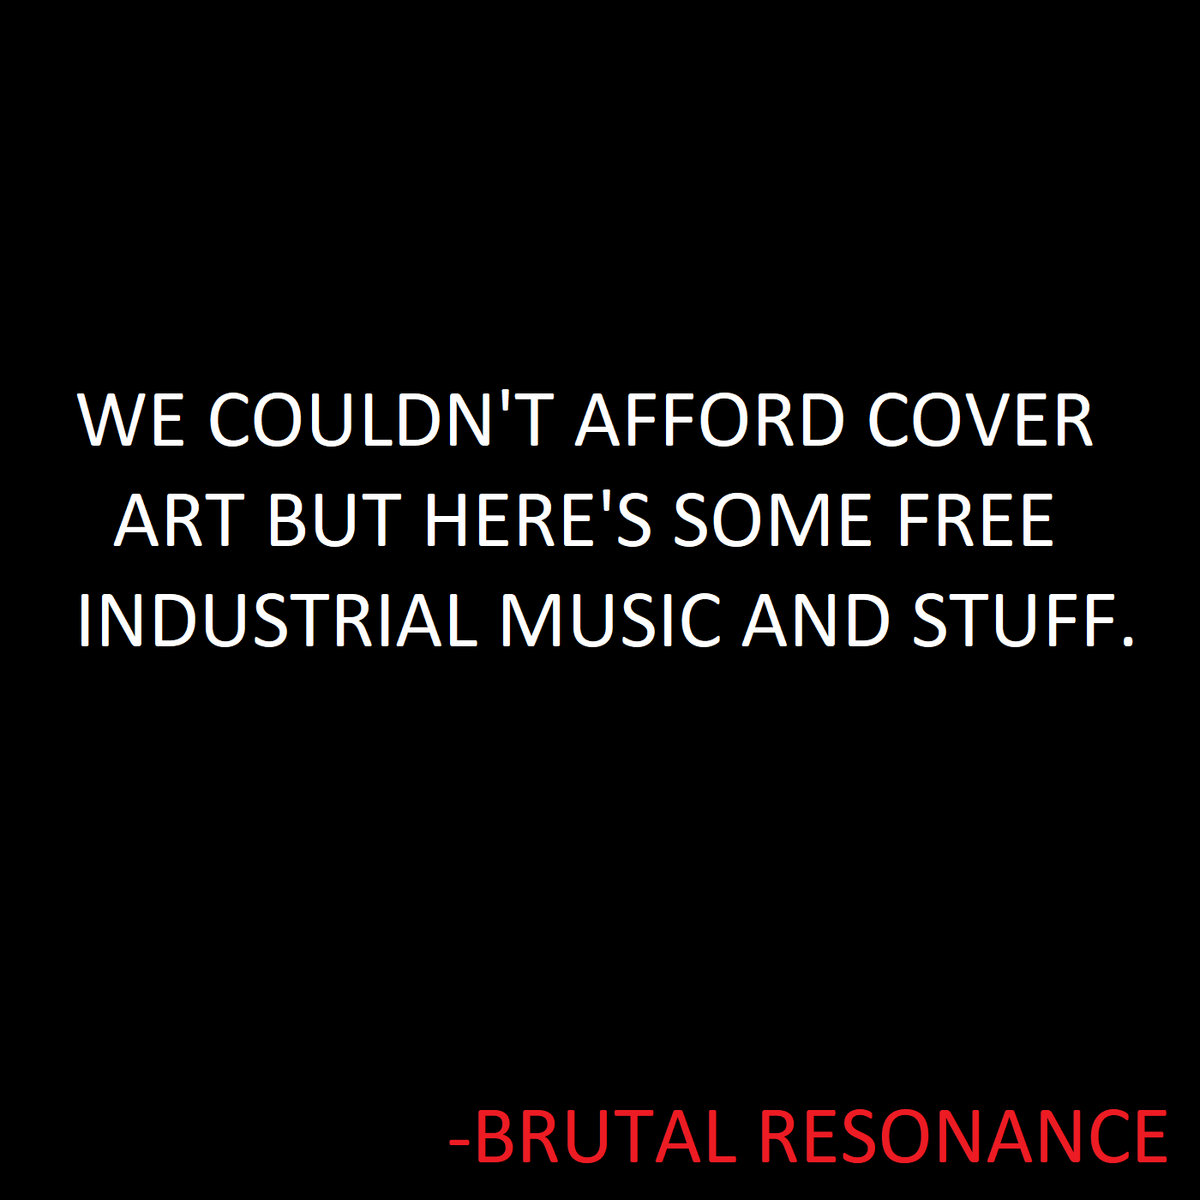 Free Industrial Music and Stuff | Brutal Resonance